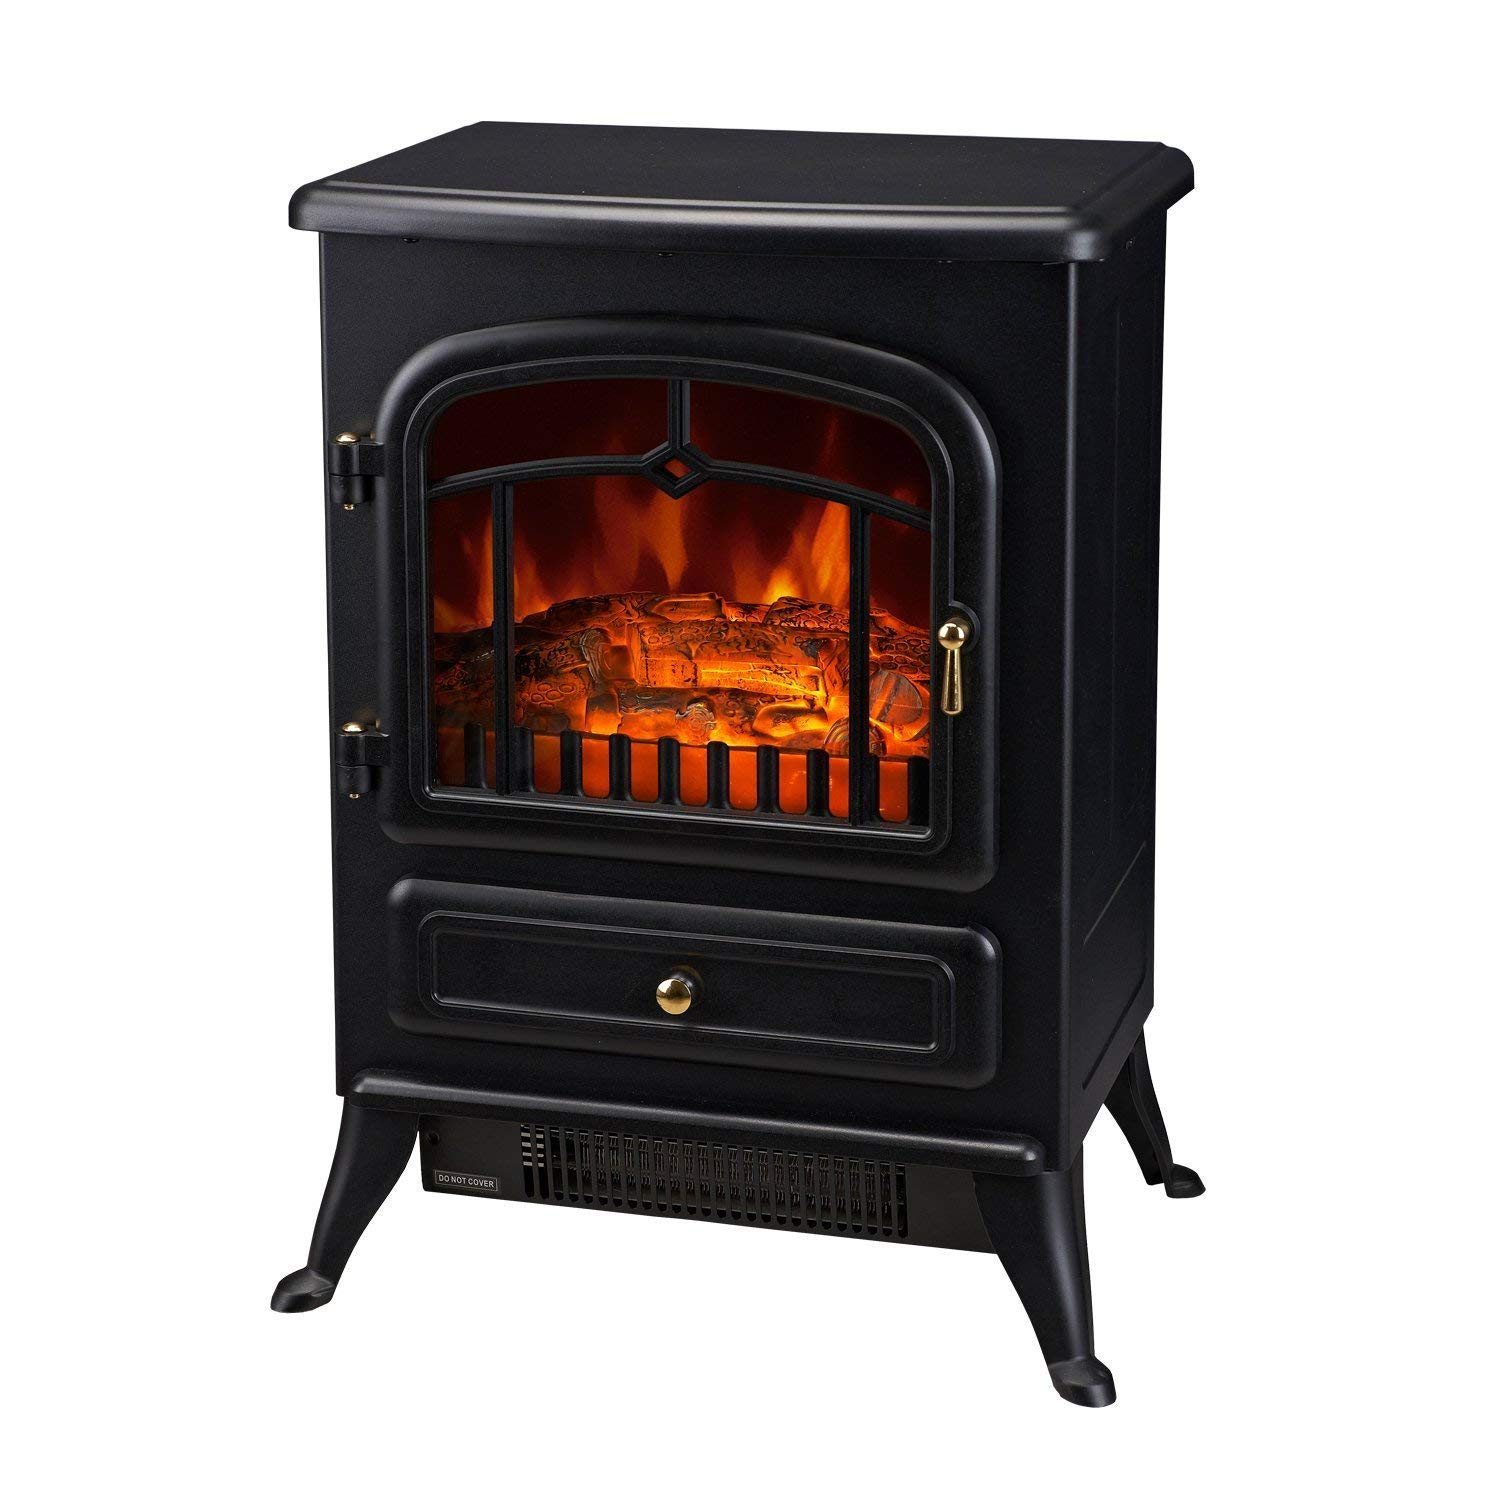 HomCom 16 1500W Free Standing Electric Wood Stove Fireplace Heater